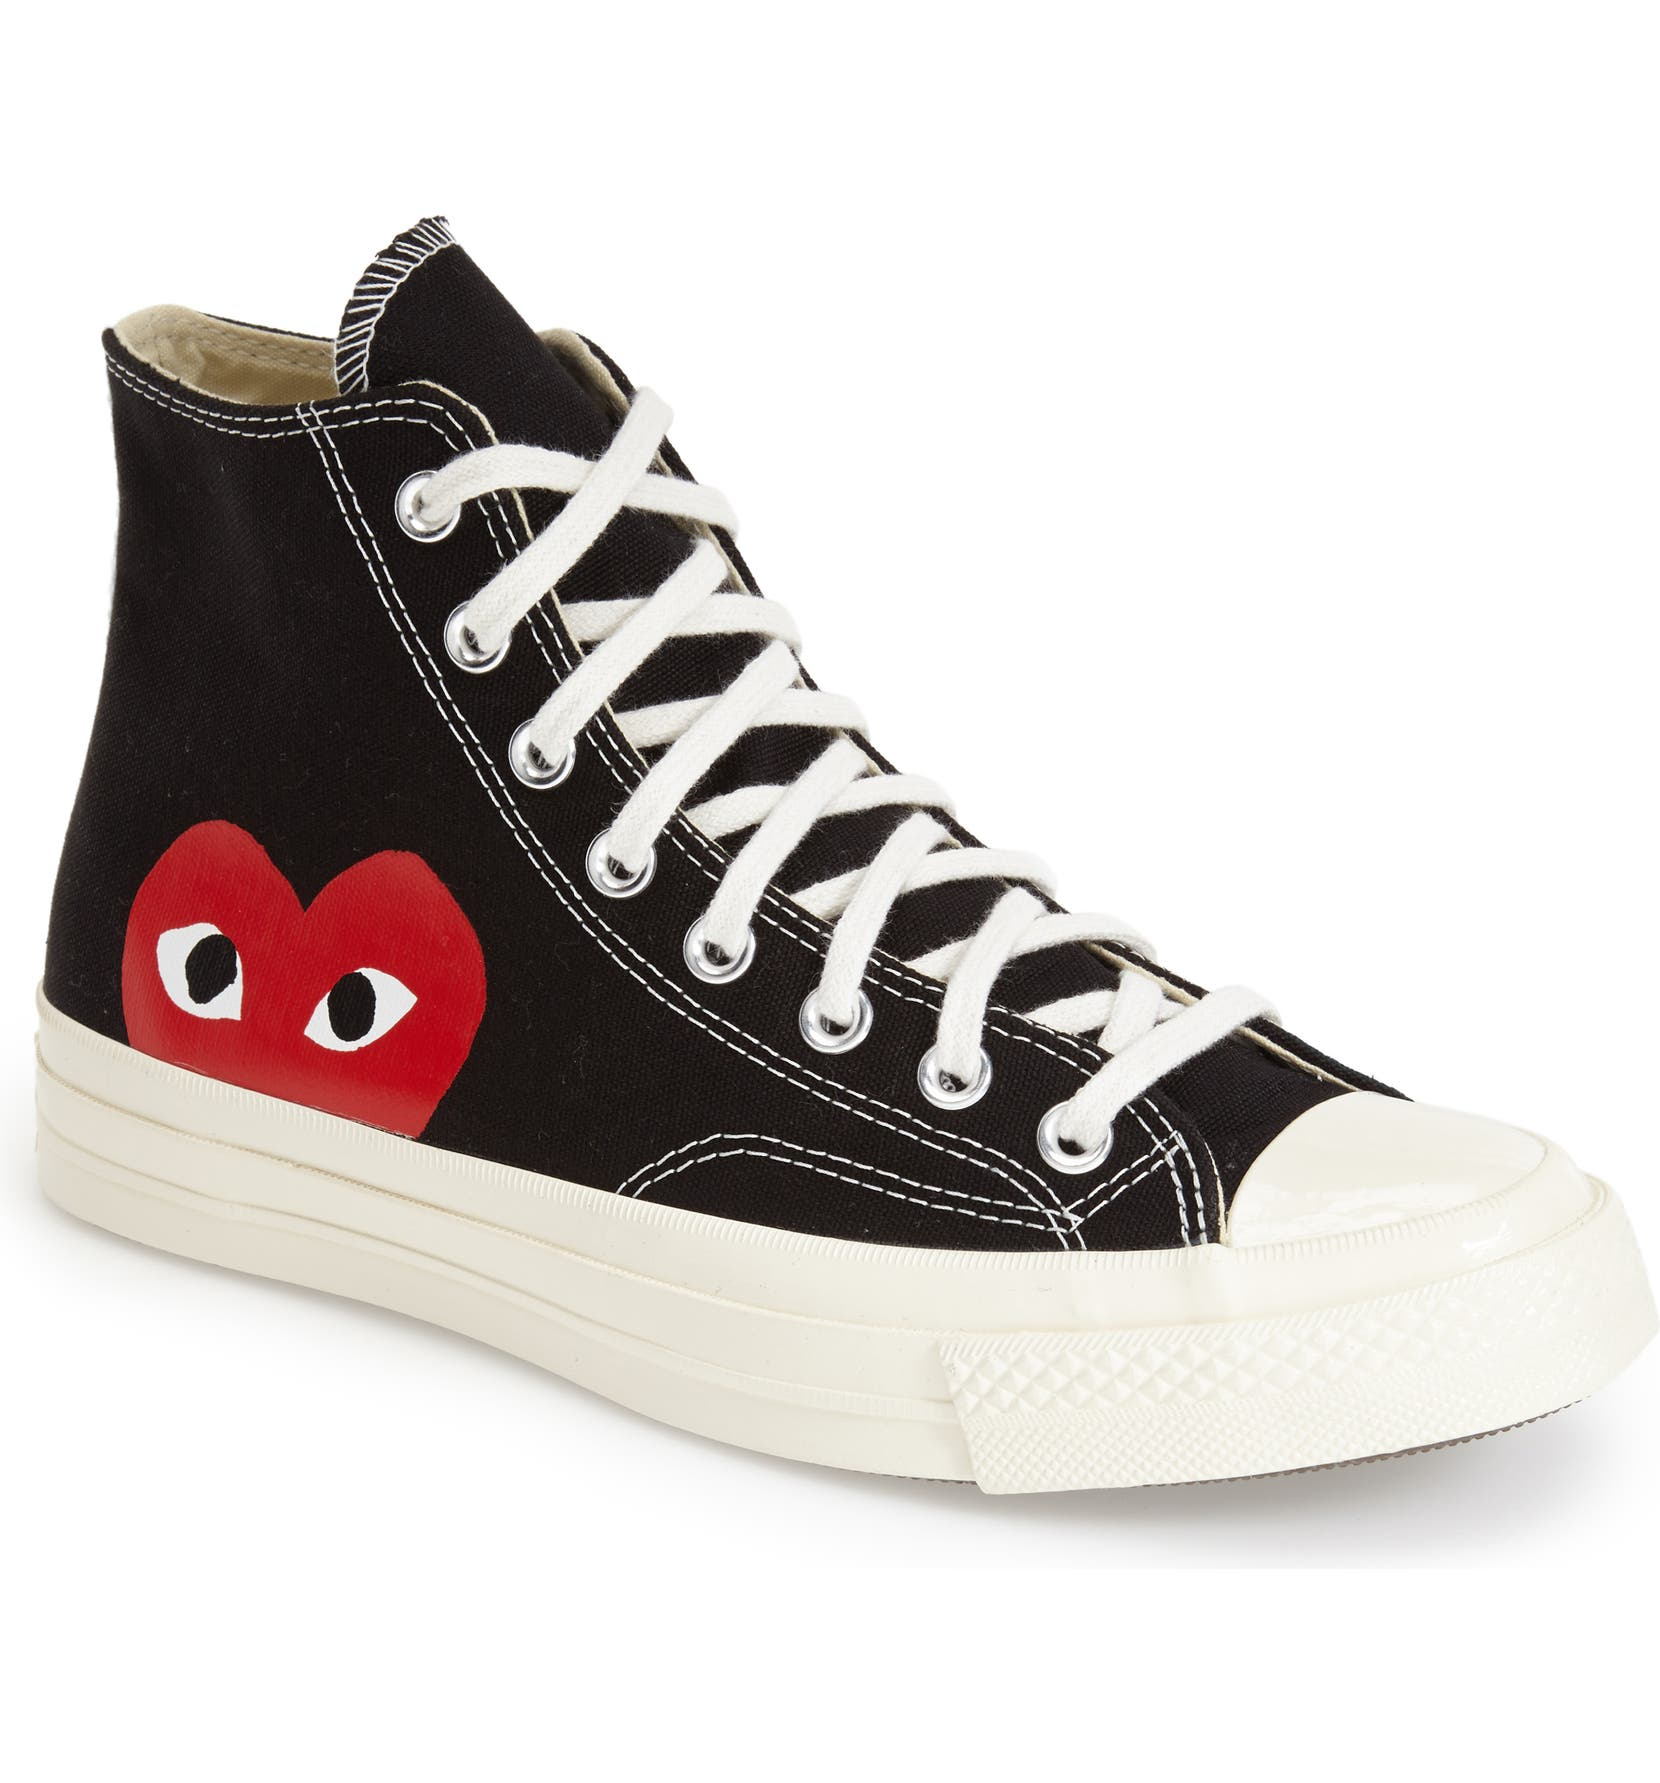 4a8b92647f15 Comme des Garçons PLAY x Converse Chuck Taylor® Hidden Heart High Top  Sneaker (Men)